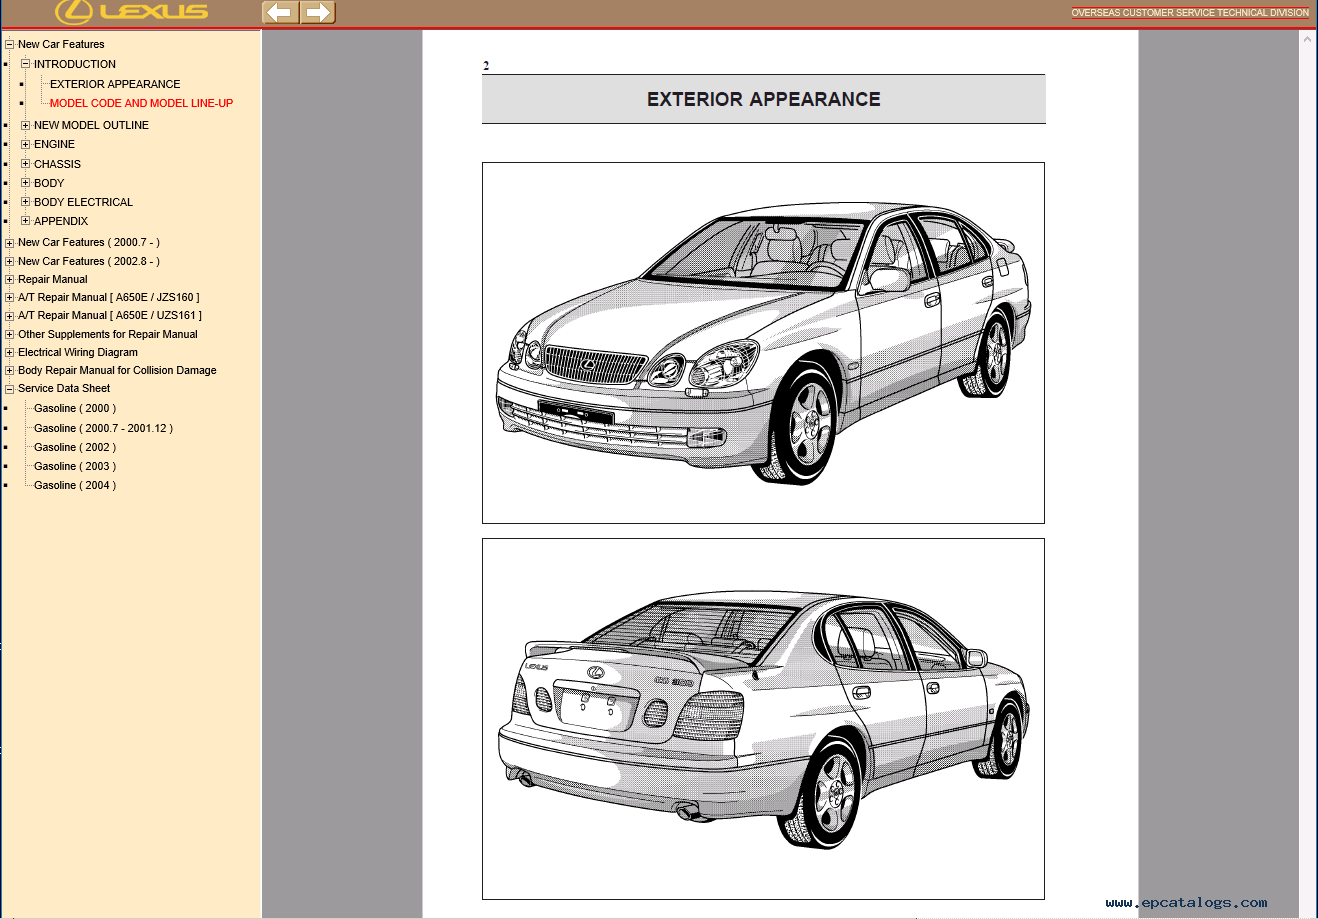 2001 lexus ls 430 owners manual pdf